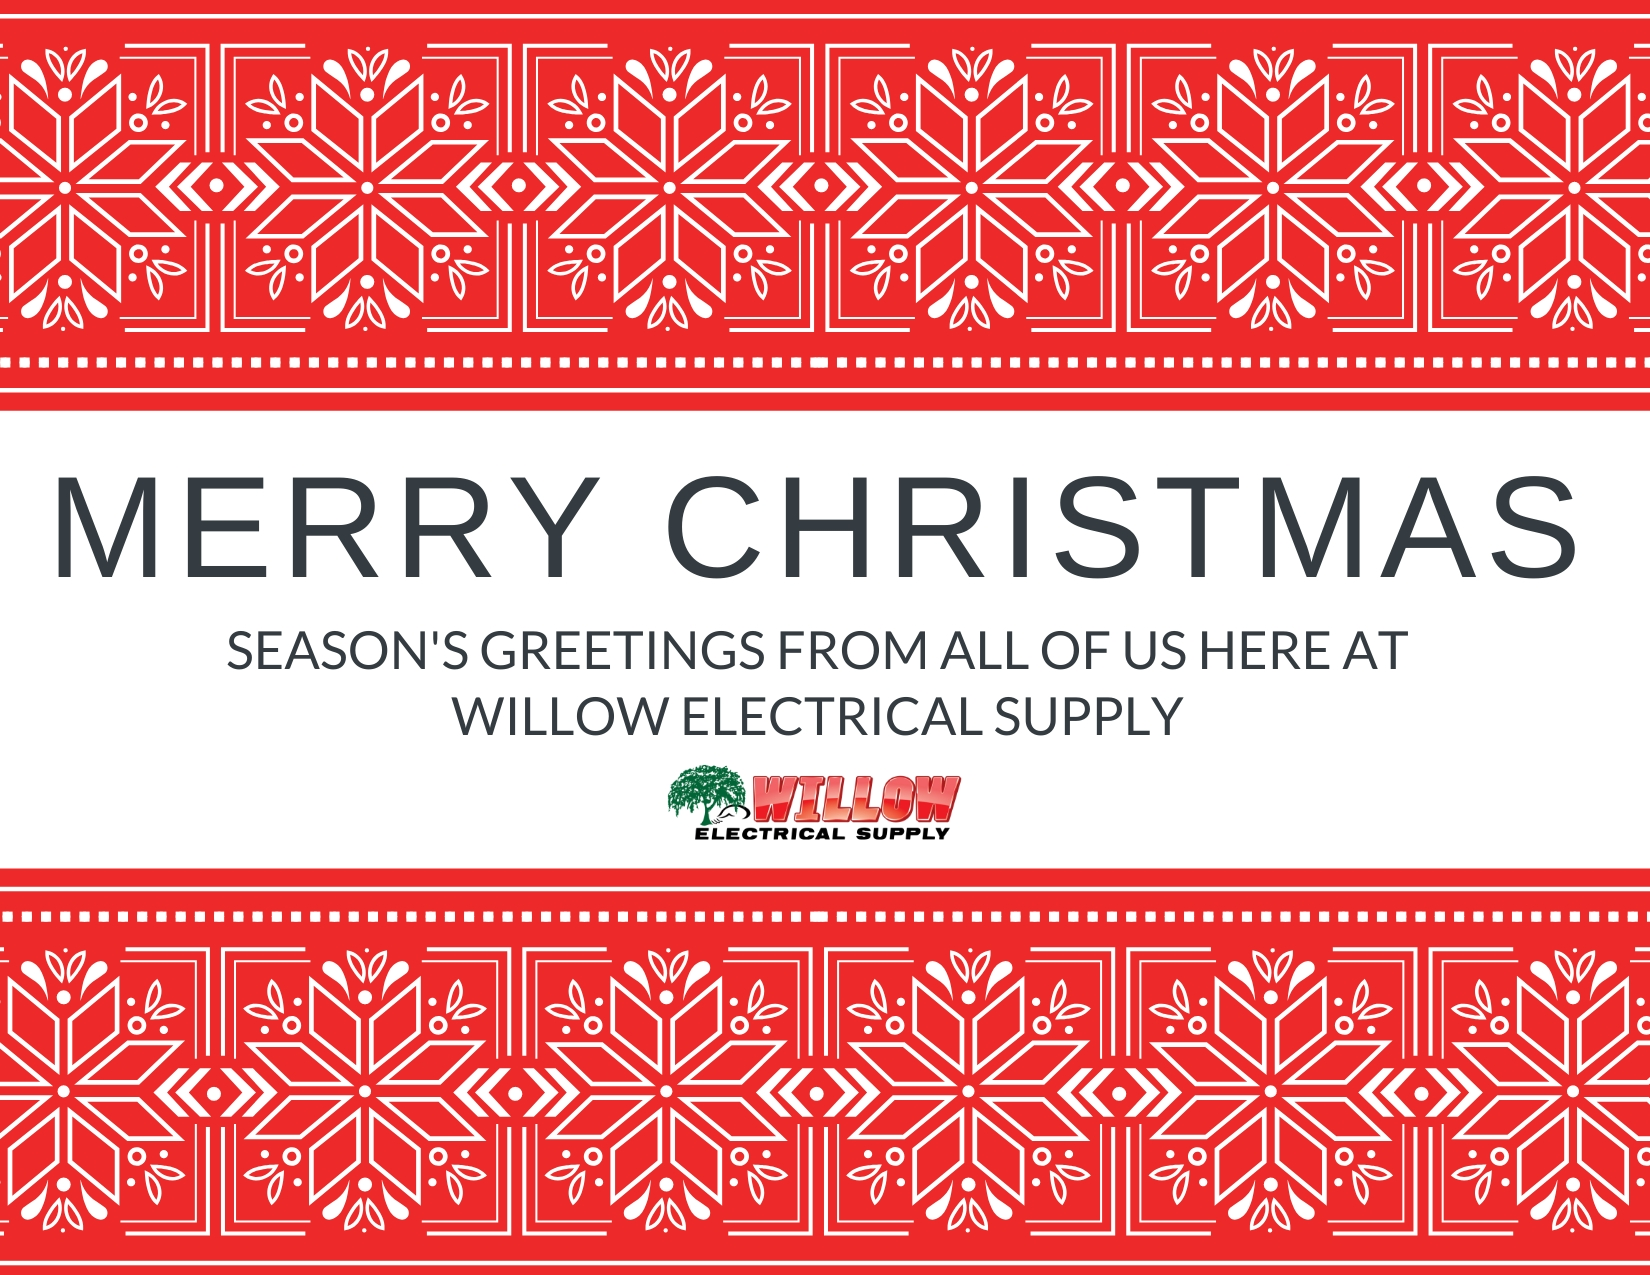 Merry Christmas 2020 From Willow Electrical Supply (We'Re Closed) Show Me December 2021 Calendar